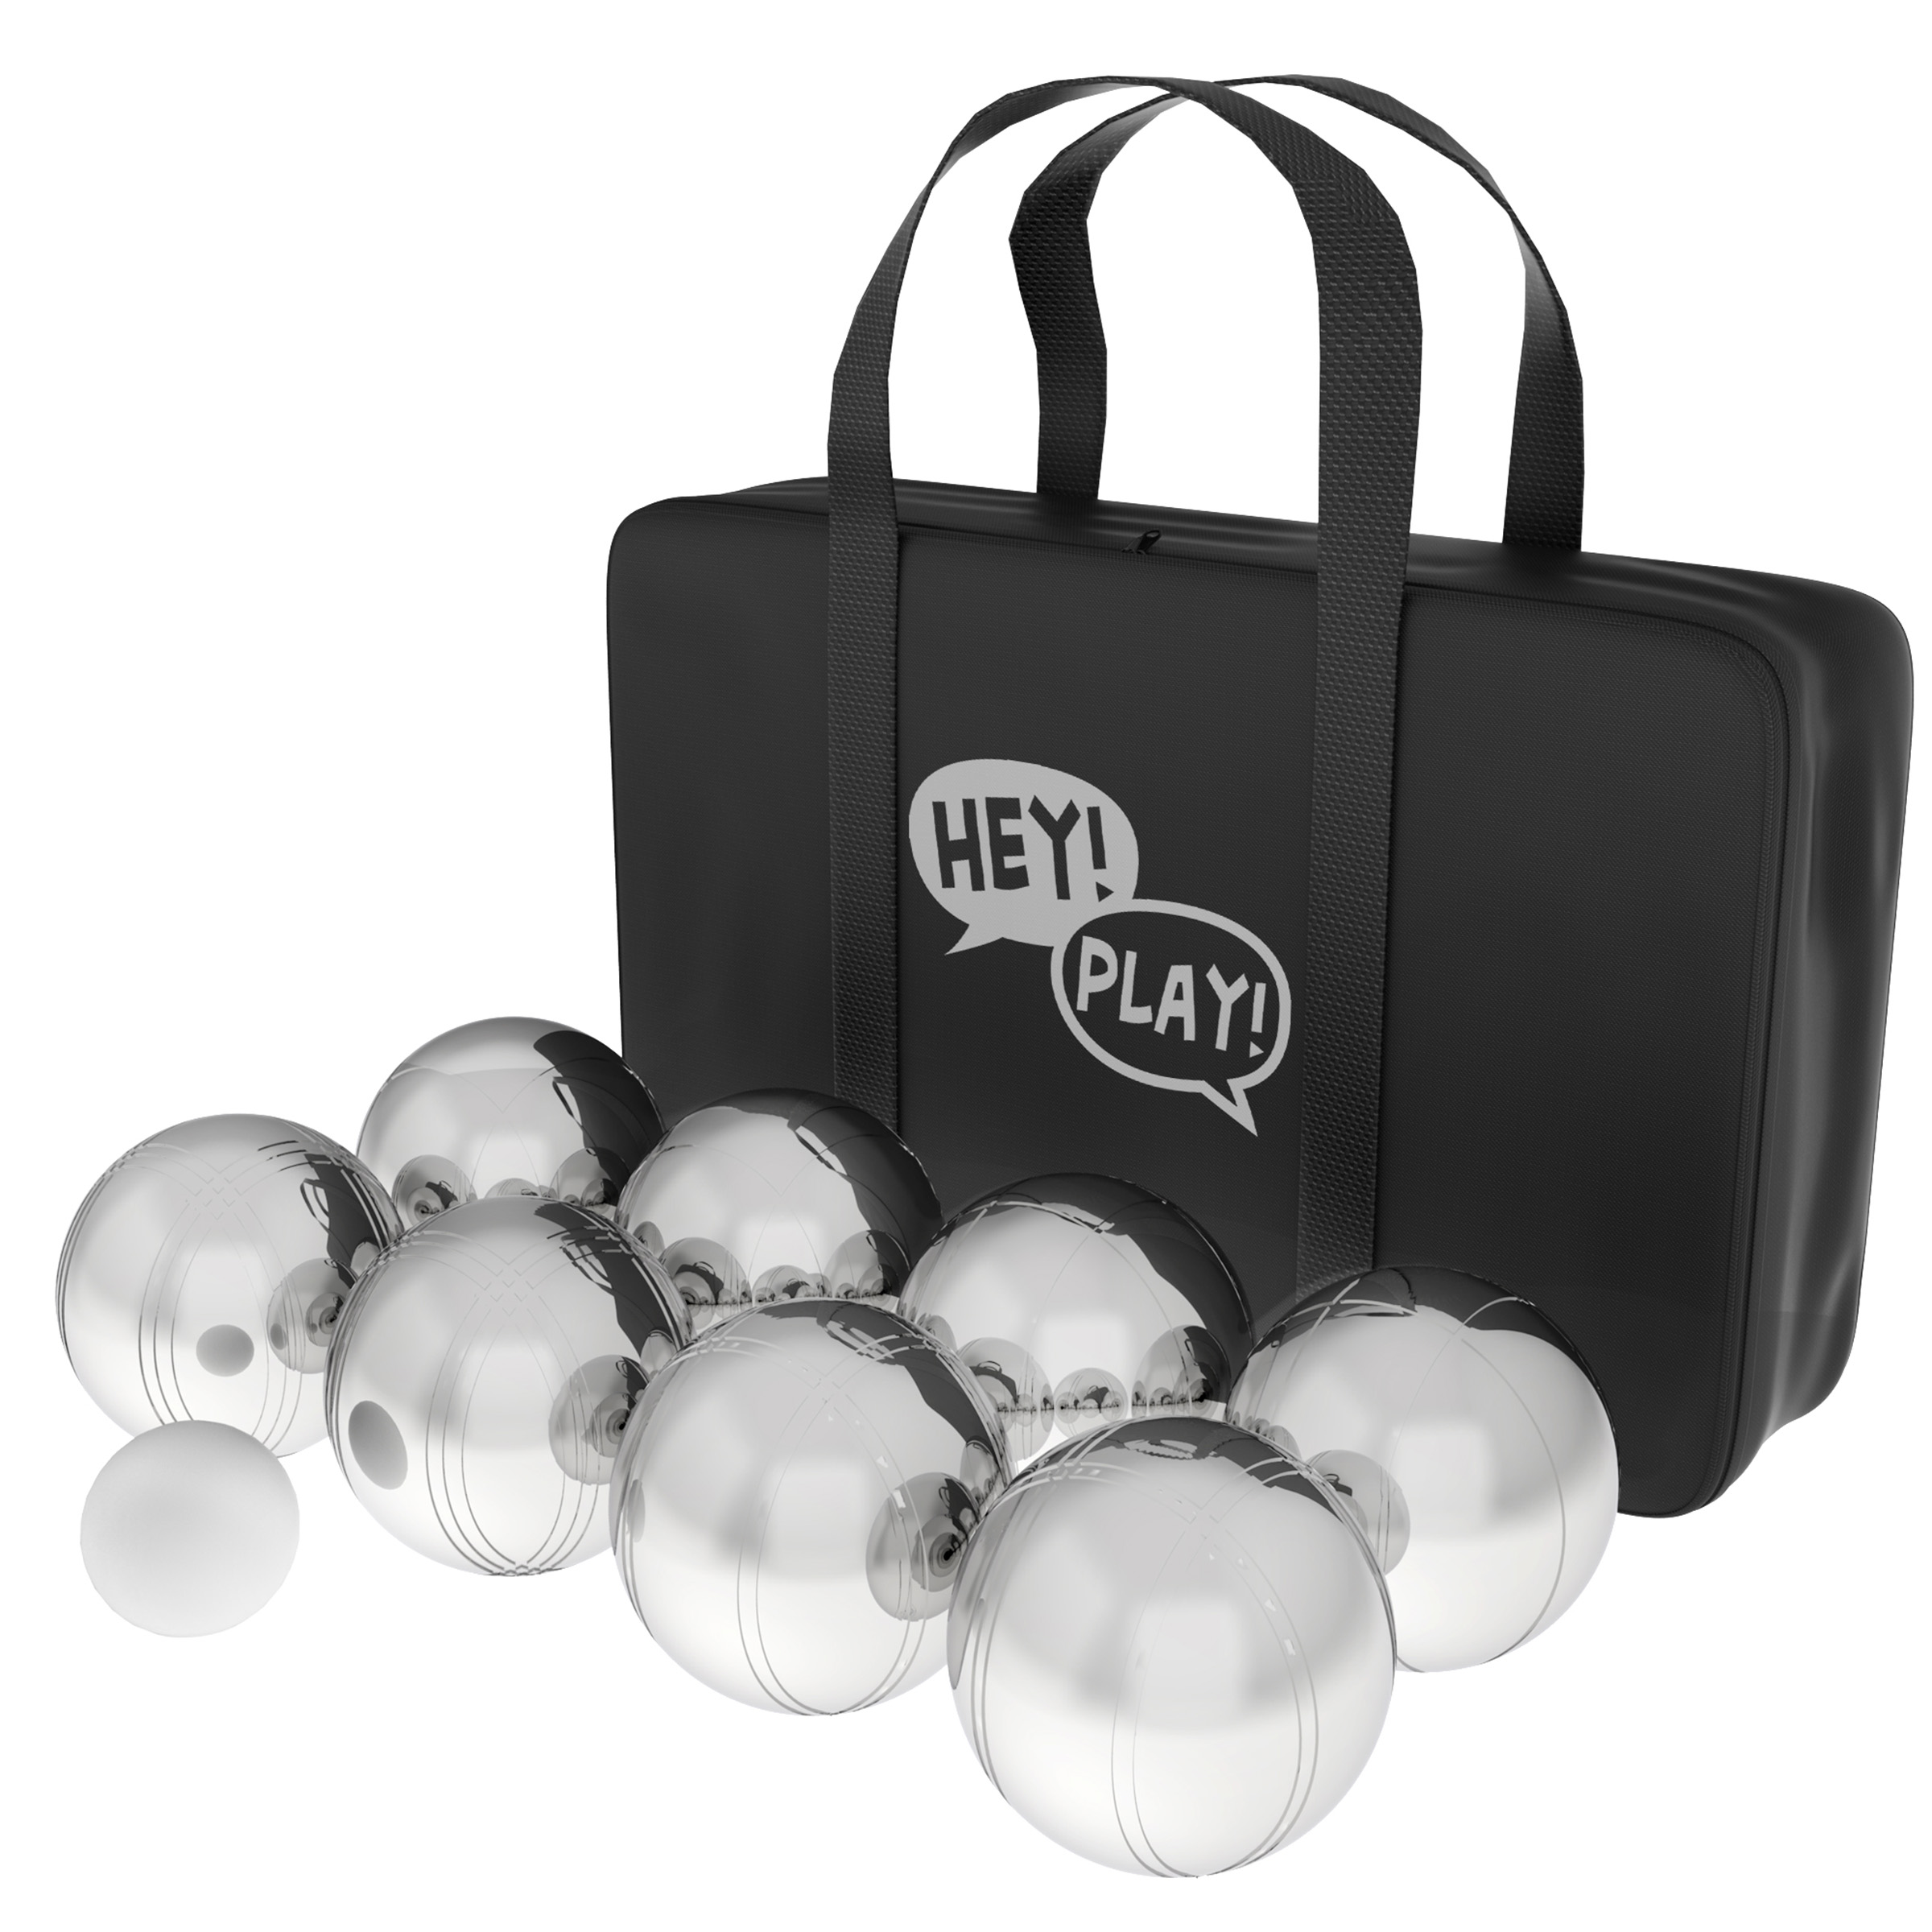 Petanque / Boules, Steel Bocce Ball Set by Hey! Play!